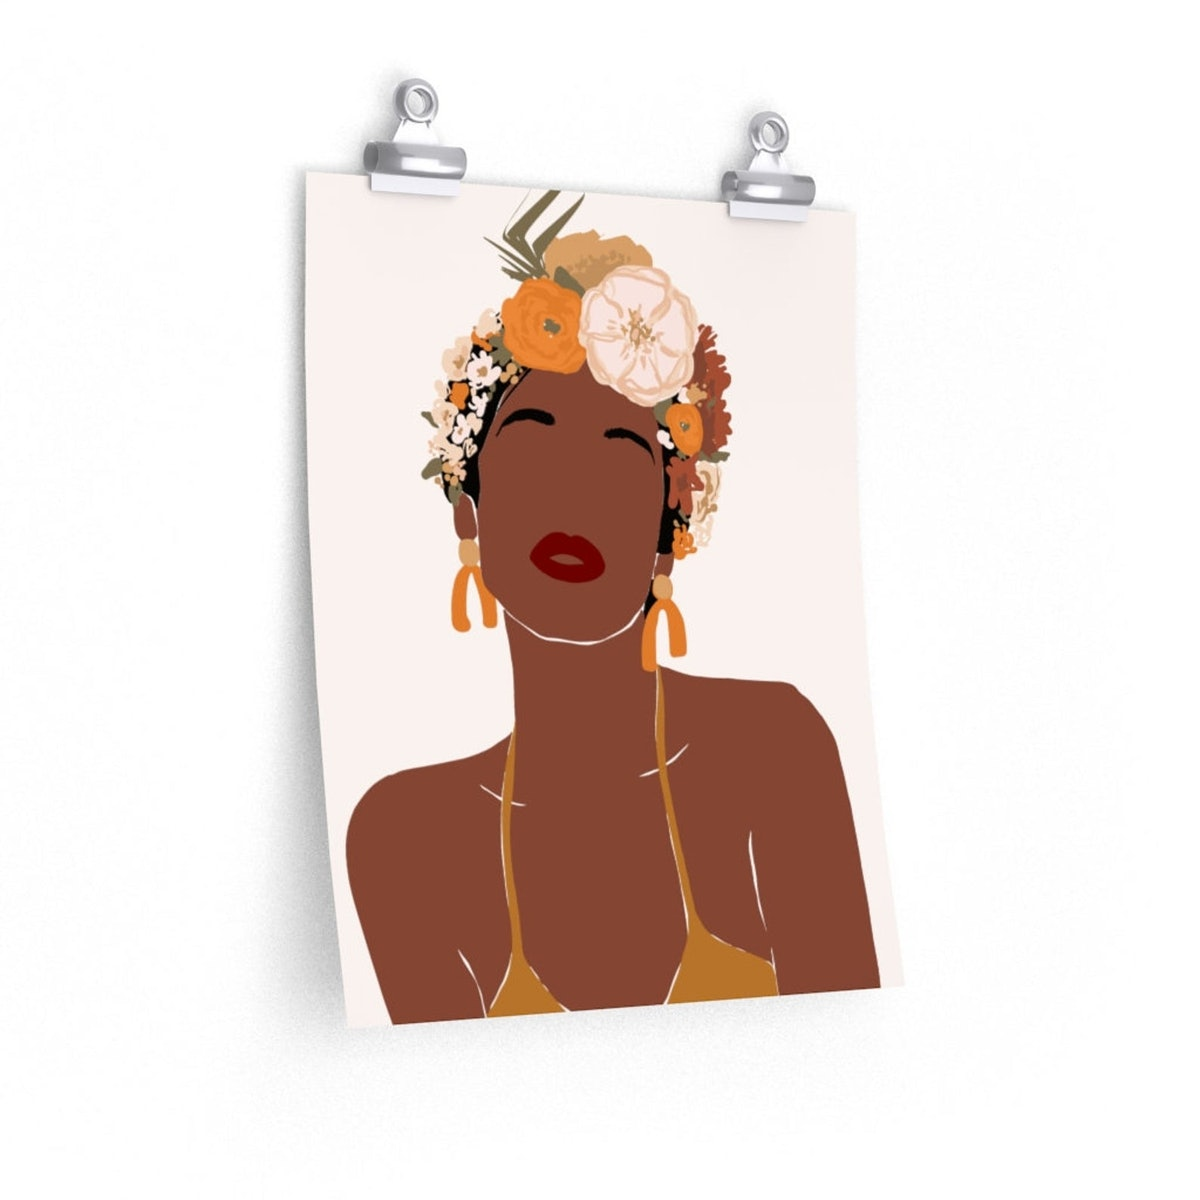 Black Woman with Flower Crown